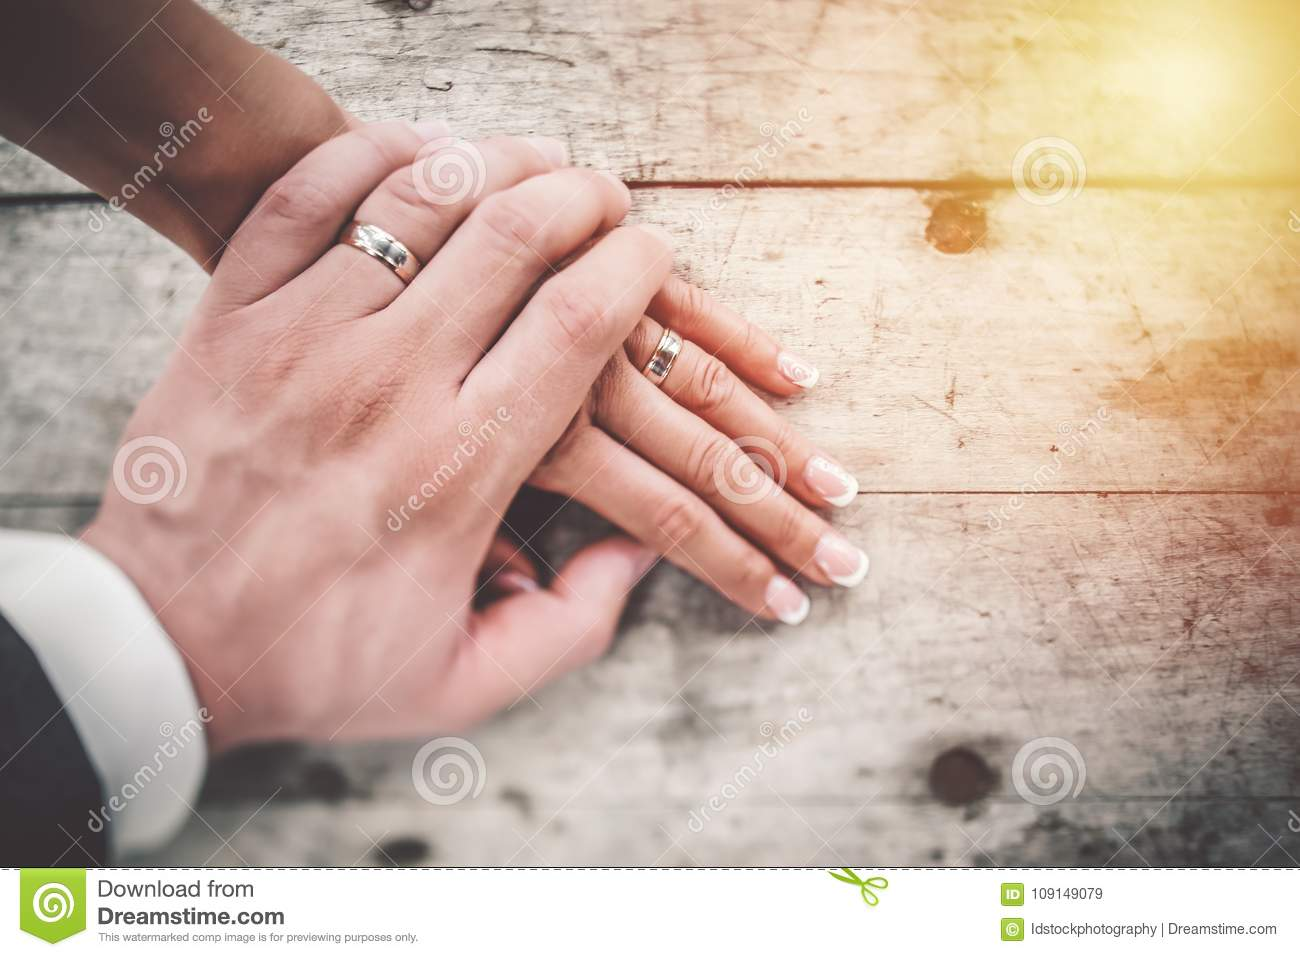 Hand In Hand. Couple In Love Showing Affection On Summer Day. Stock ...